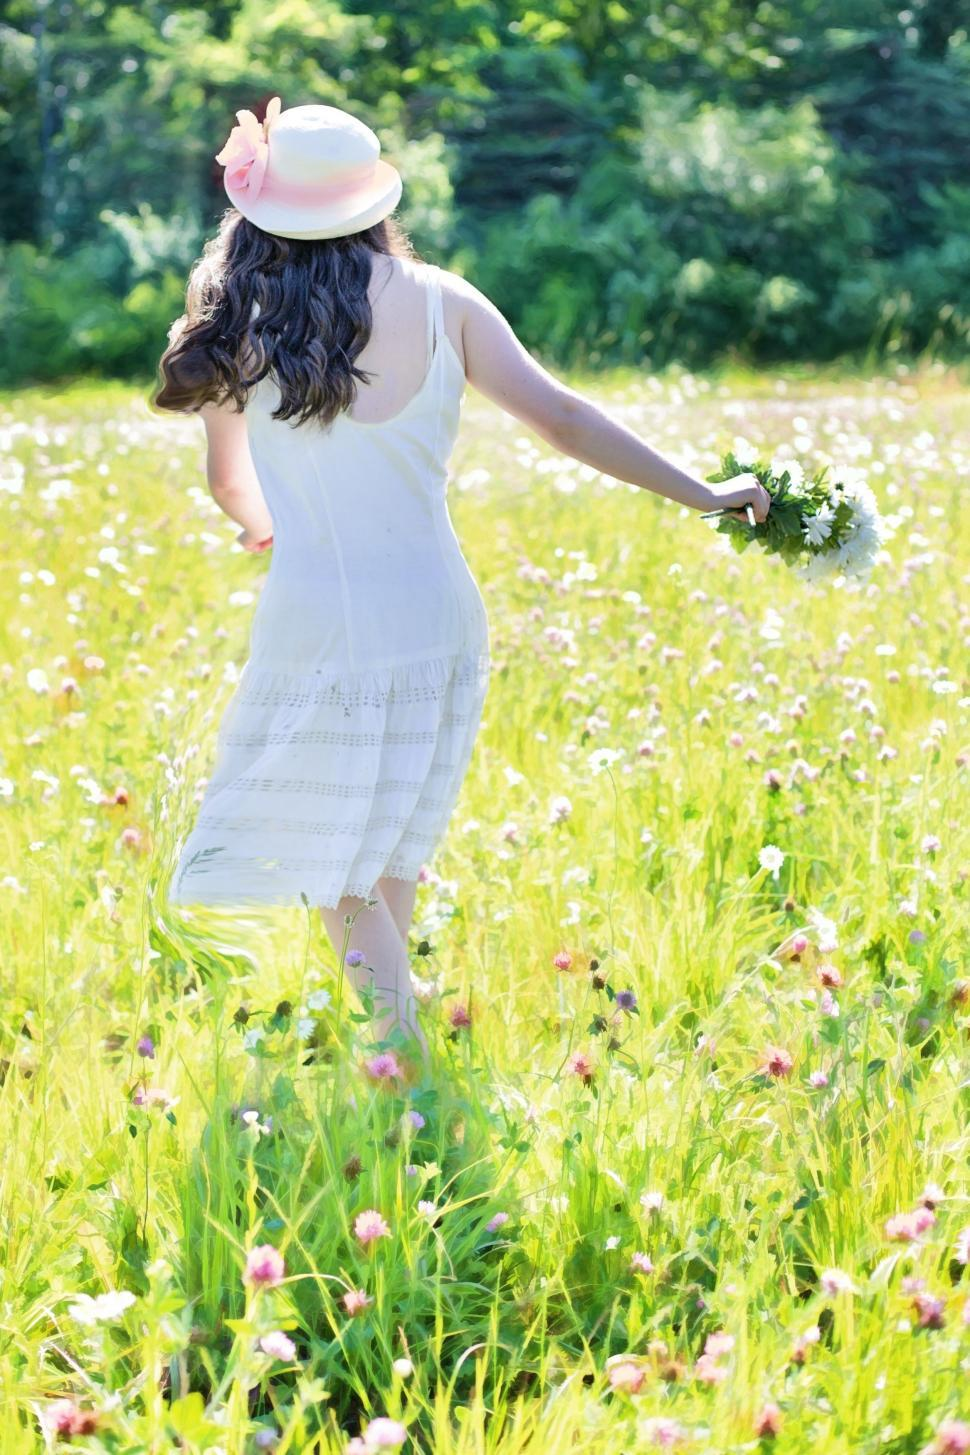 Download Free Stock Photo of Back View of Woman With Hat in Flower Field